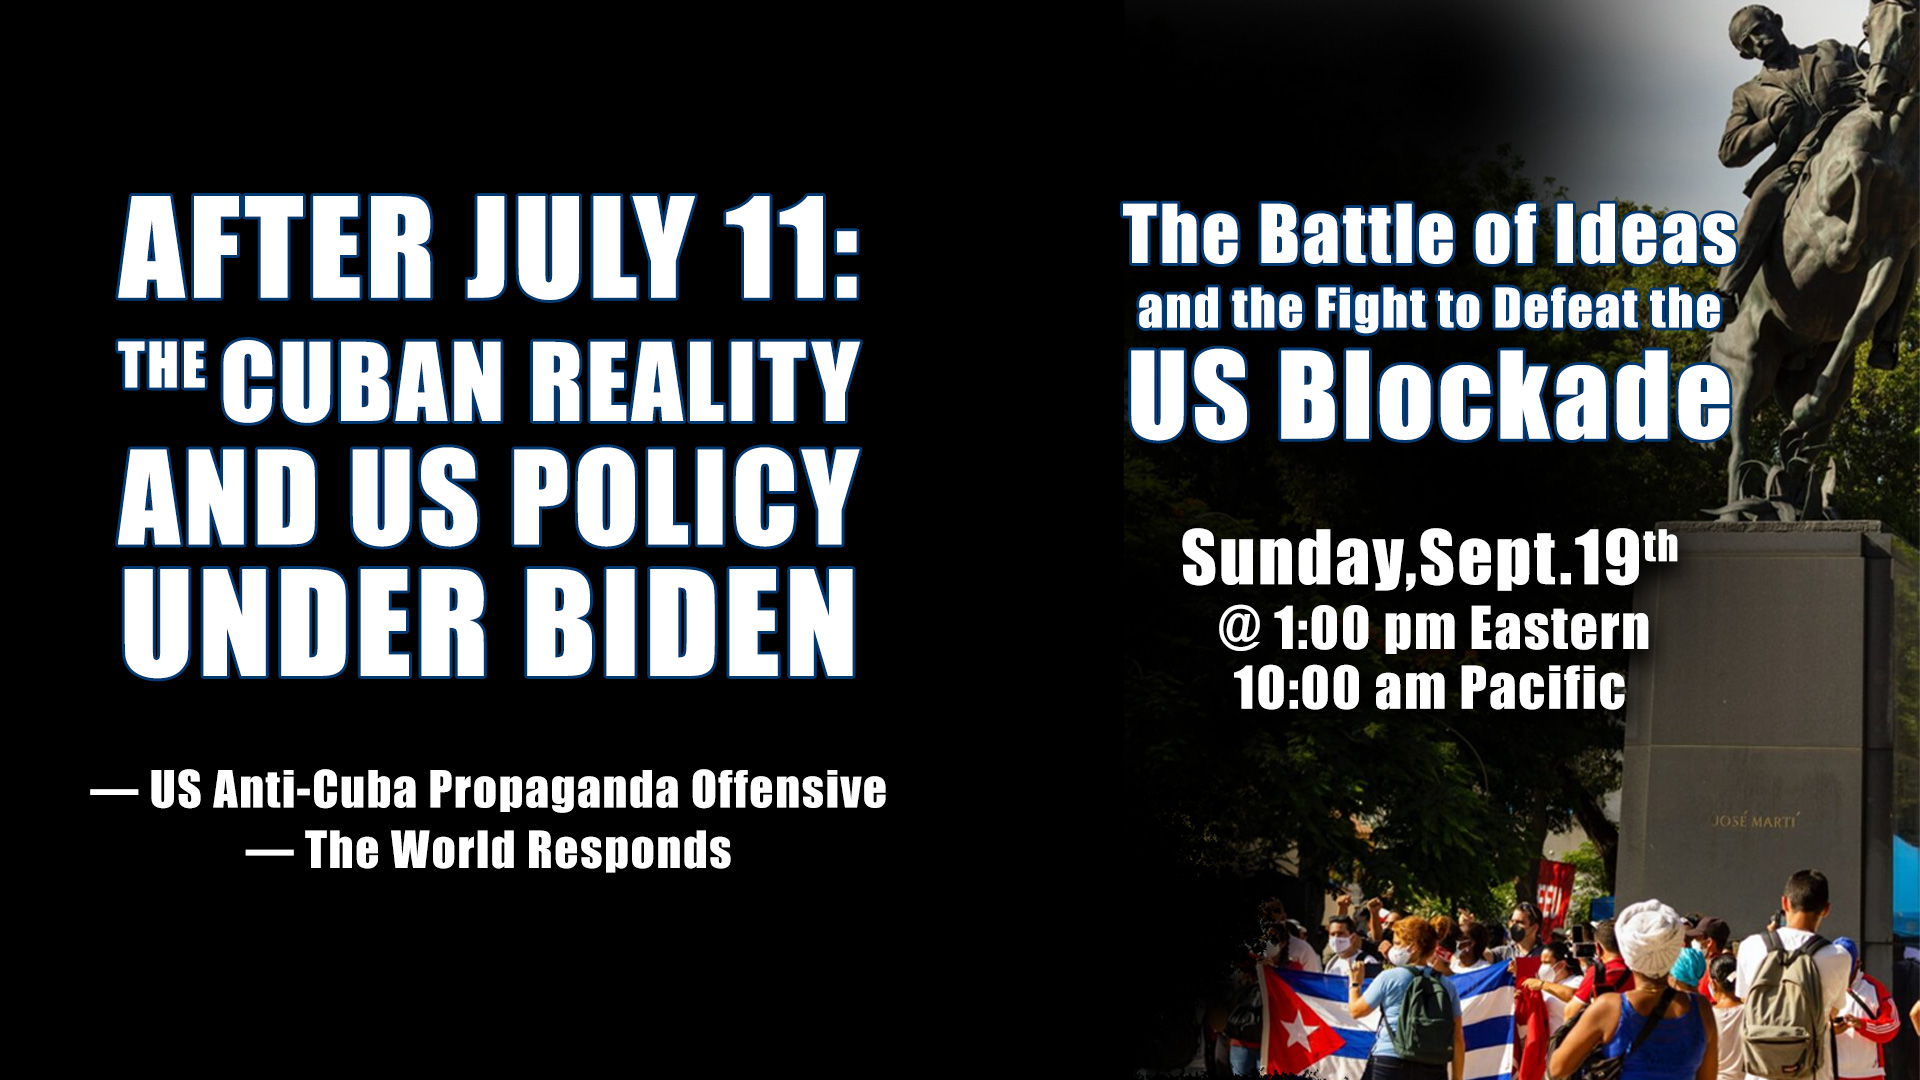 After July 11: The Cuban Reality and US Policy Under Biden